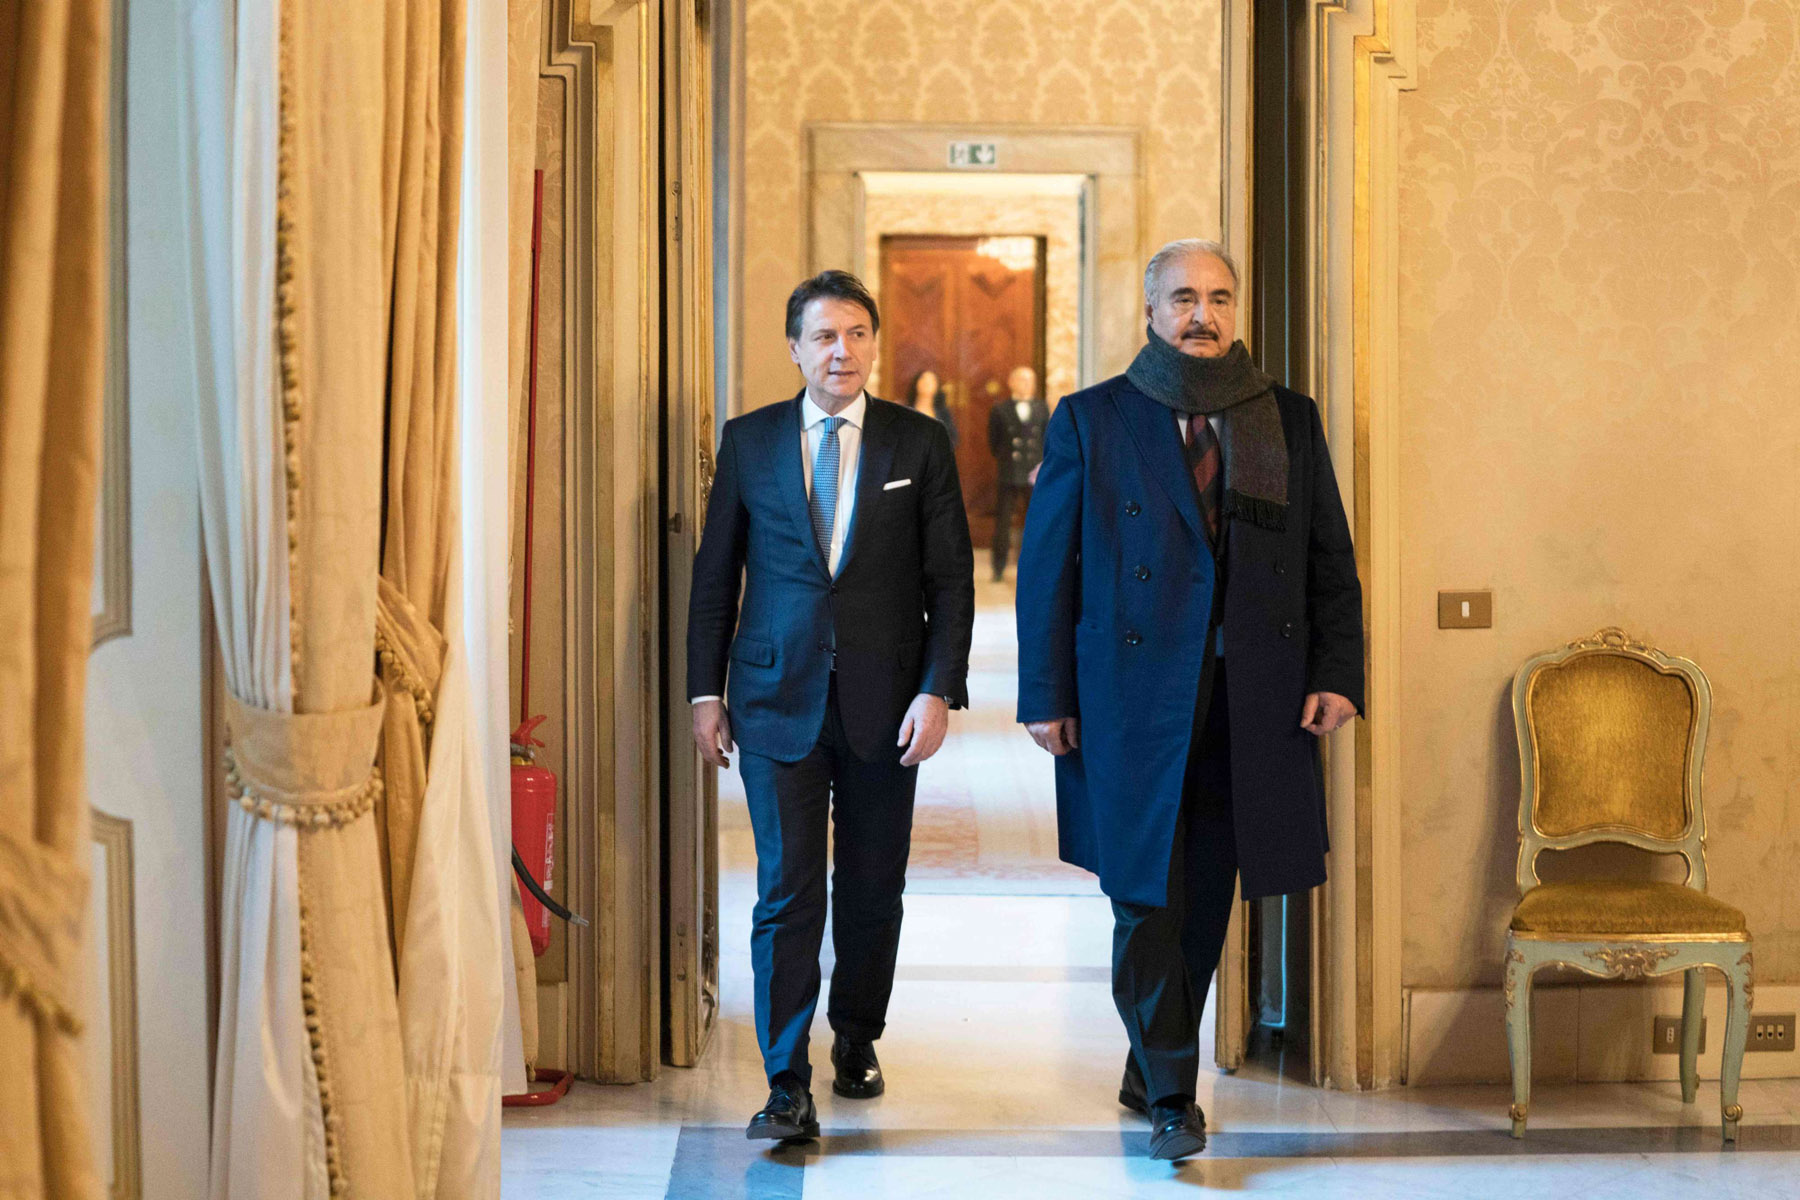 Unchanged course. Italy's Prime Minister Giuseppe Conte (L) and Libya's military strongman Khalifa Haftar at Palazzo Chigi in downtown Rome for a meeting as part of Europe's accelerating diplomatic efforts to seek ways to ease crisis, January 8.             (AFP)